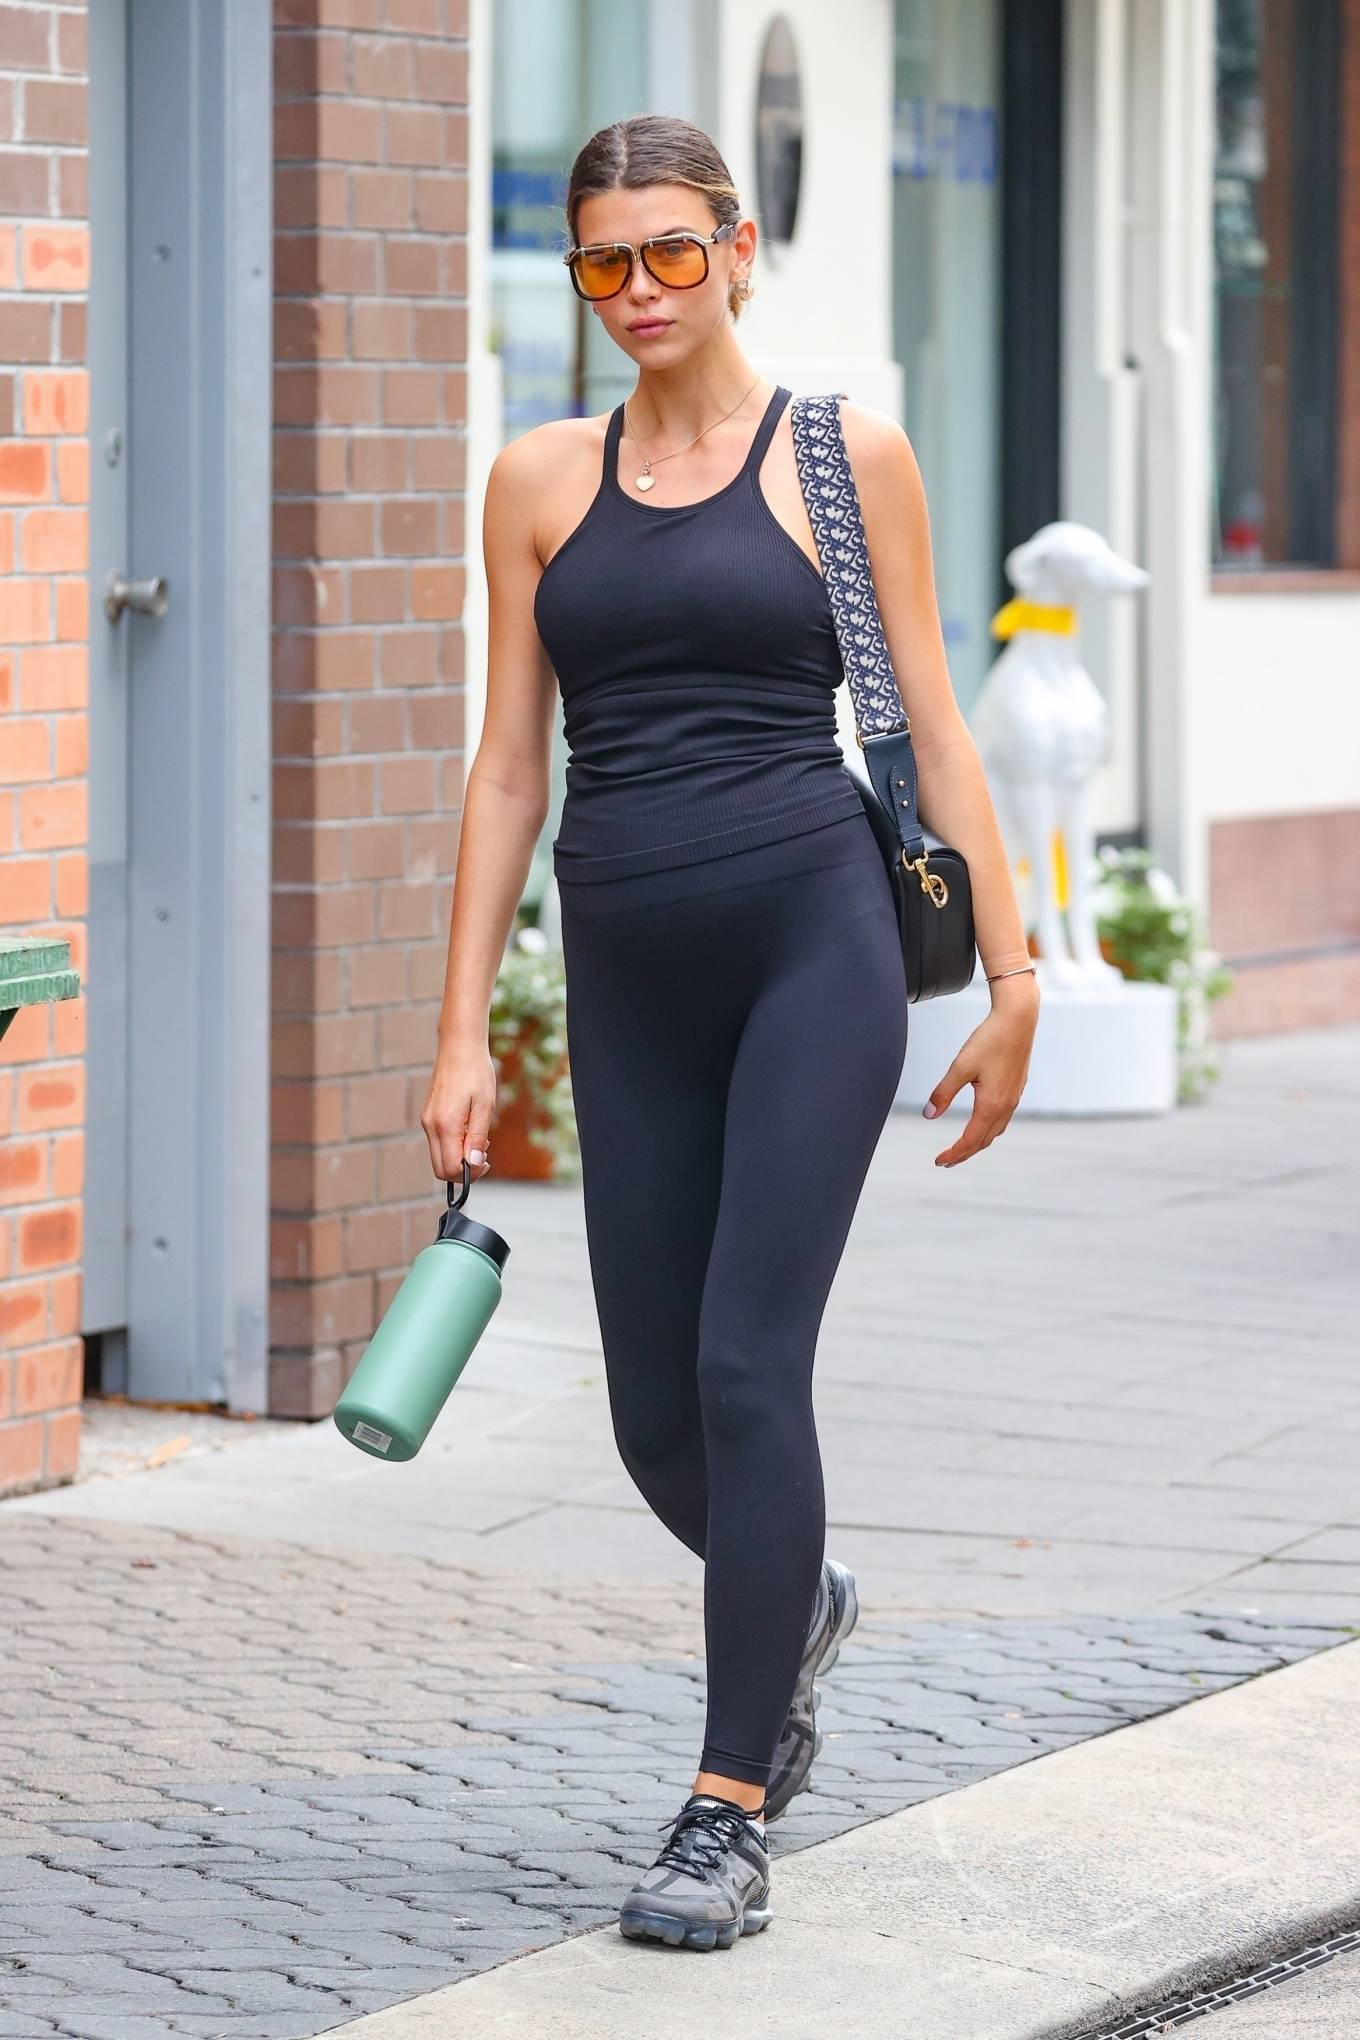 Georgia Fowler donning a figure hugging black camisole with a round neck and straps